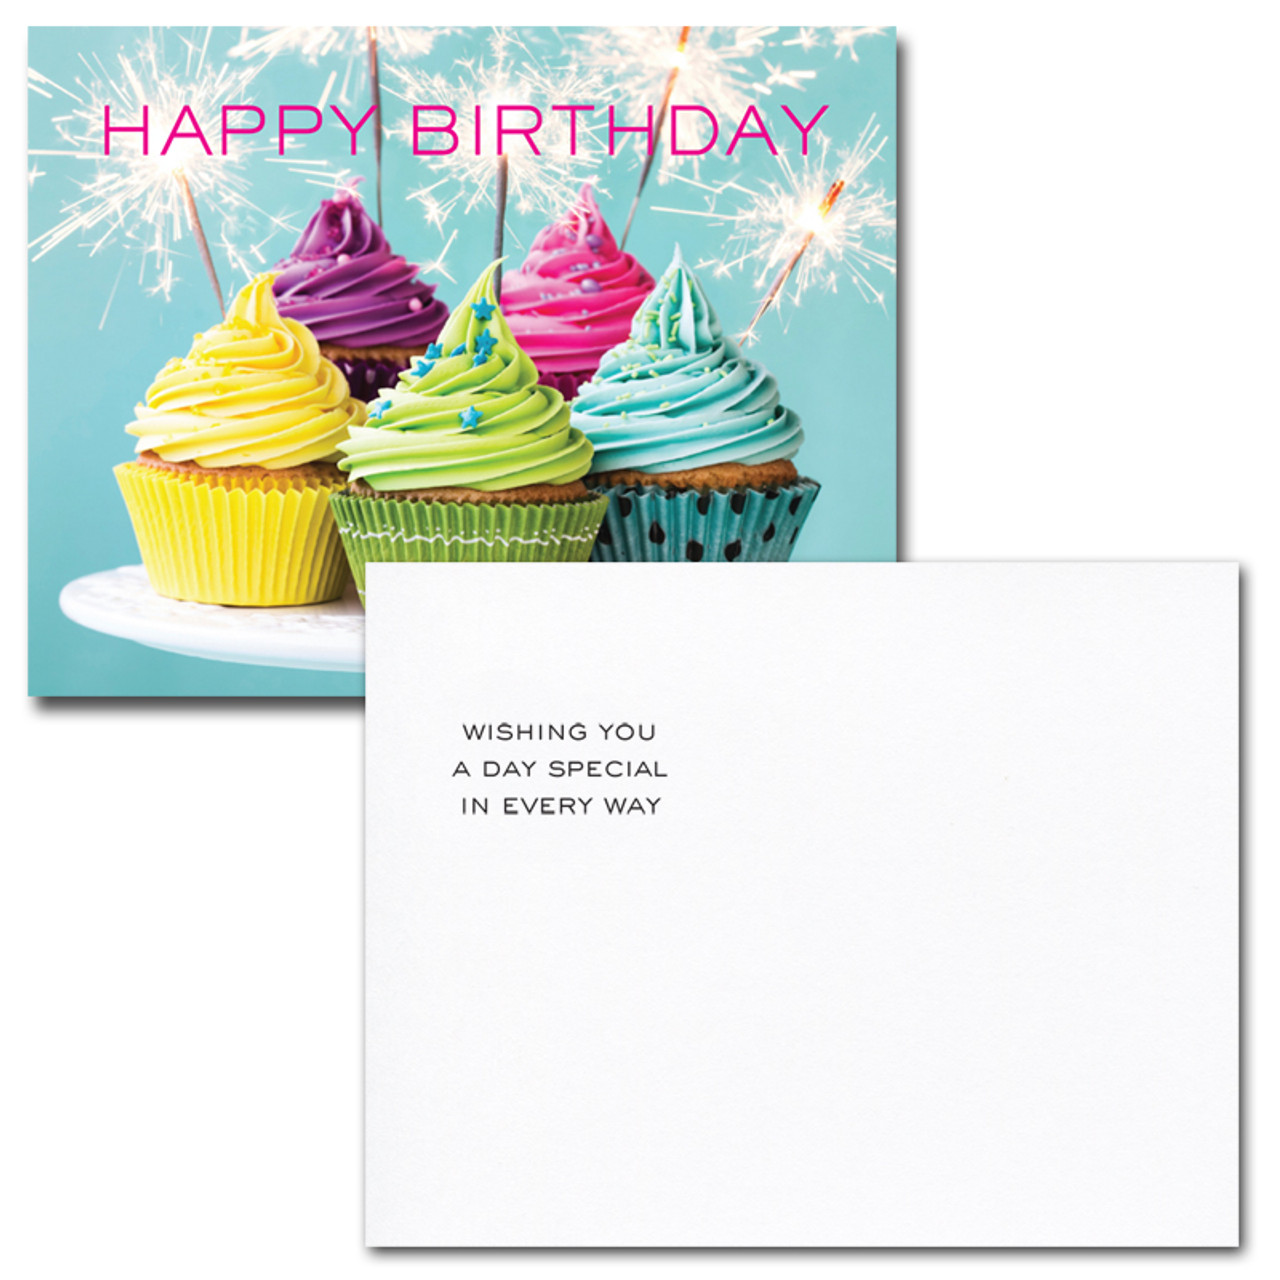 """Sparklers Birthday Postcard greeting reads """"Wishing you a day special in every way"""""""